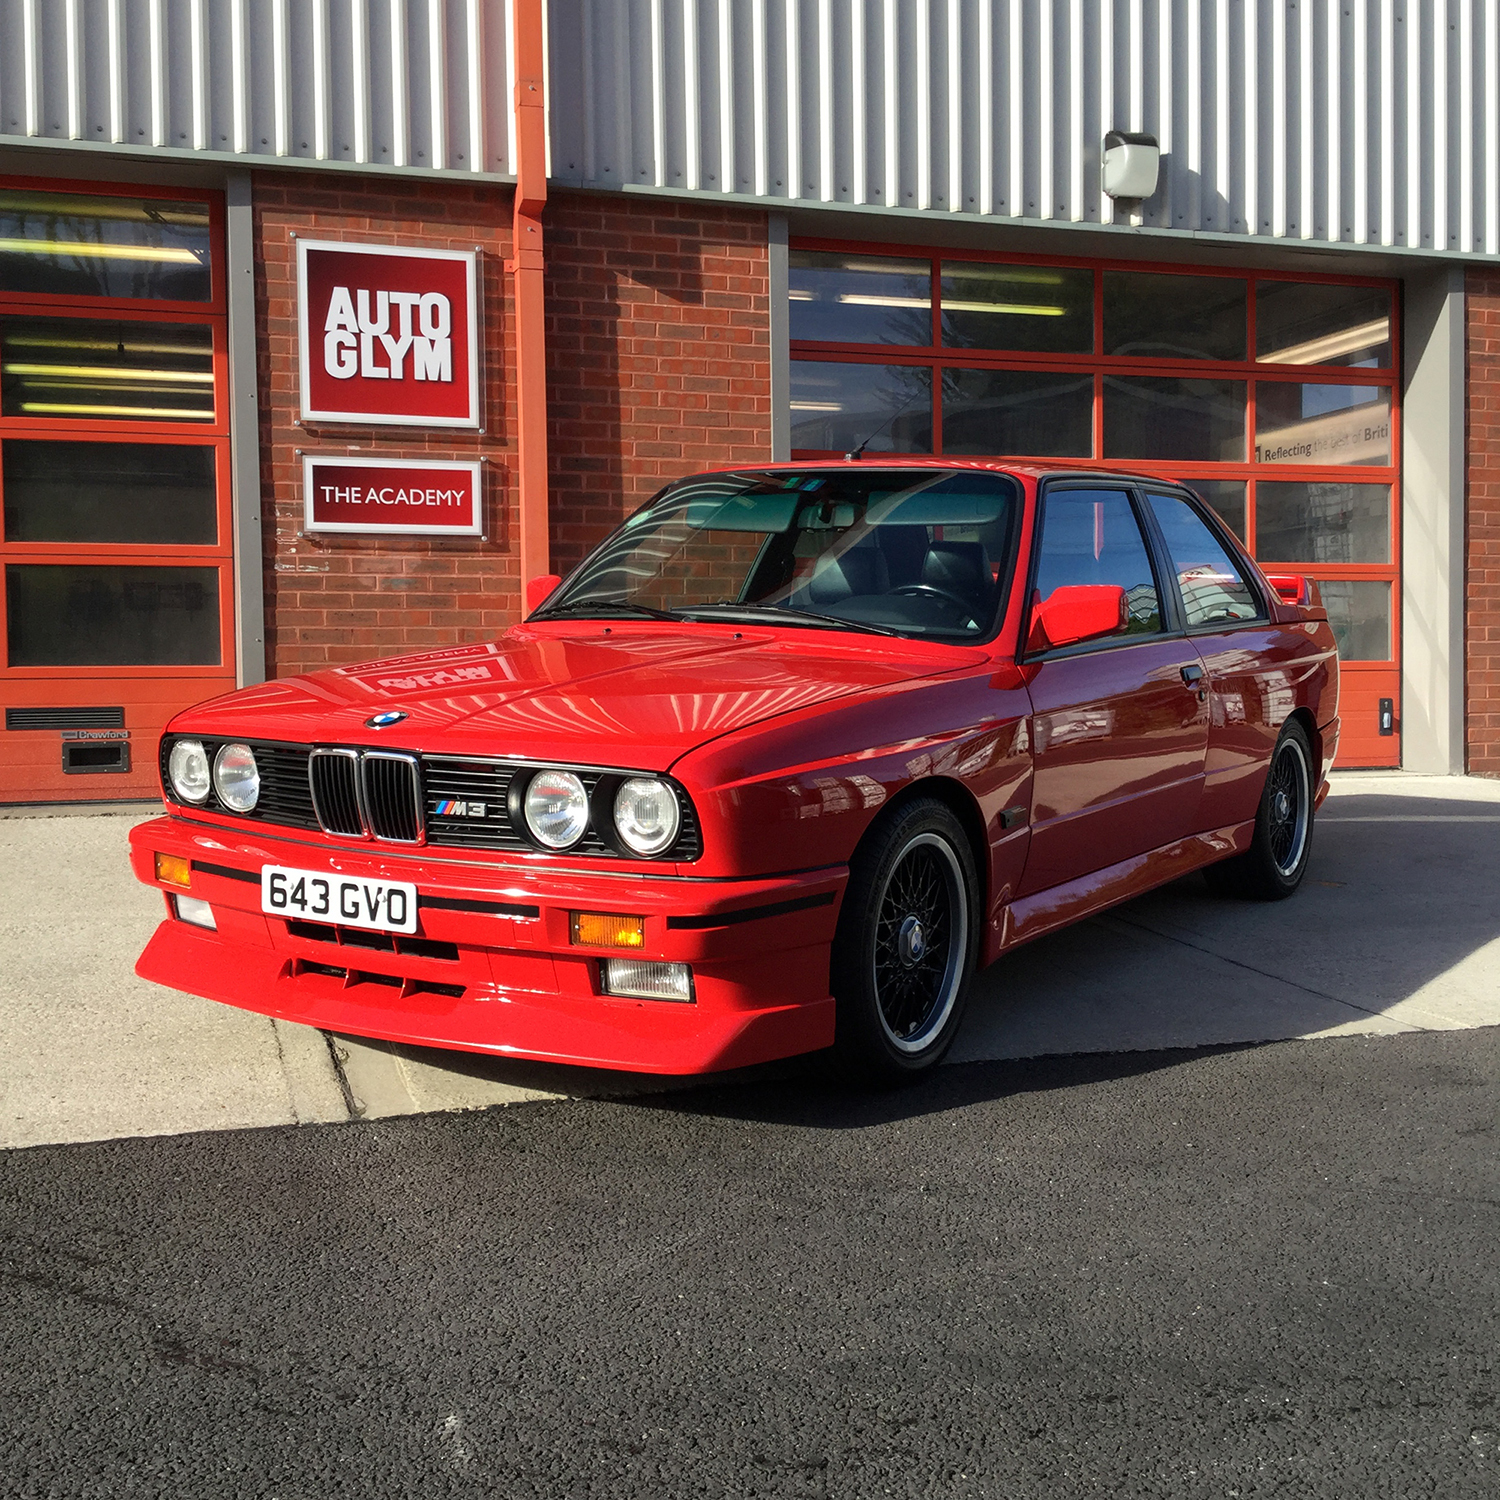 E30 M3 Cecotto Edition at Autoglym